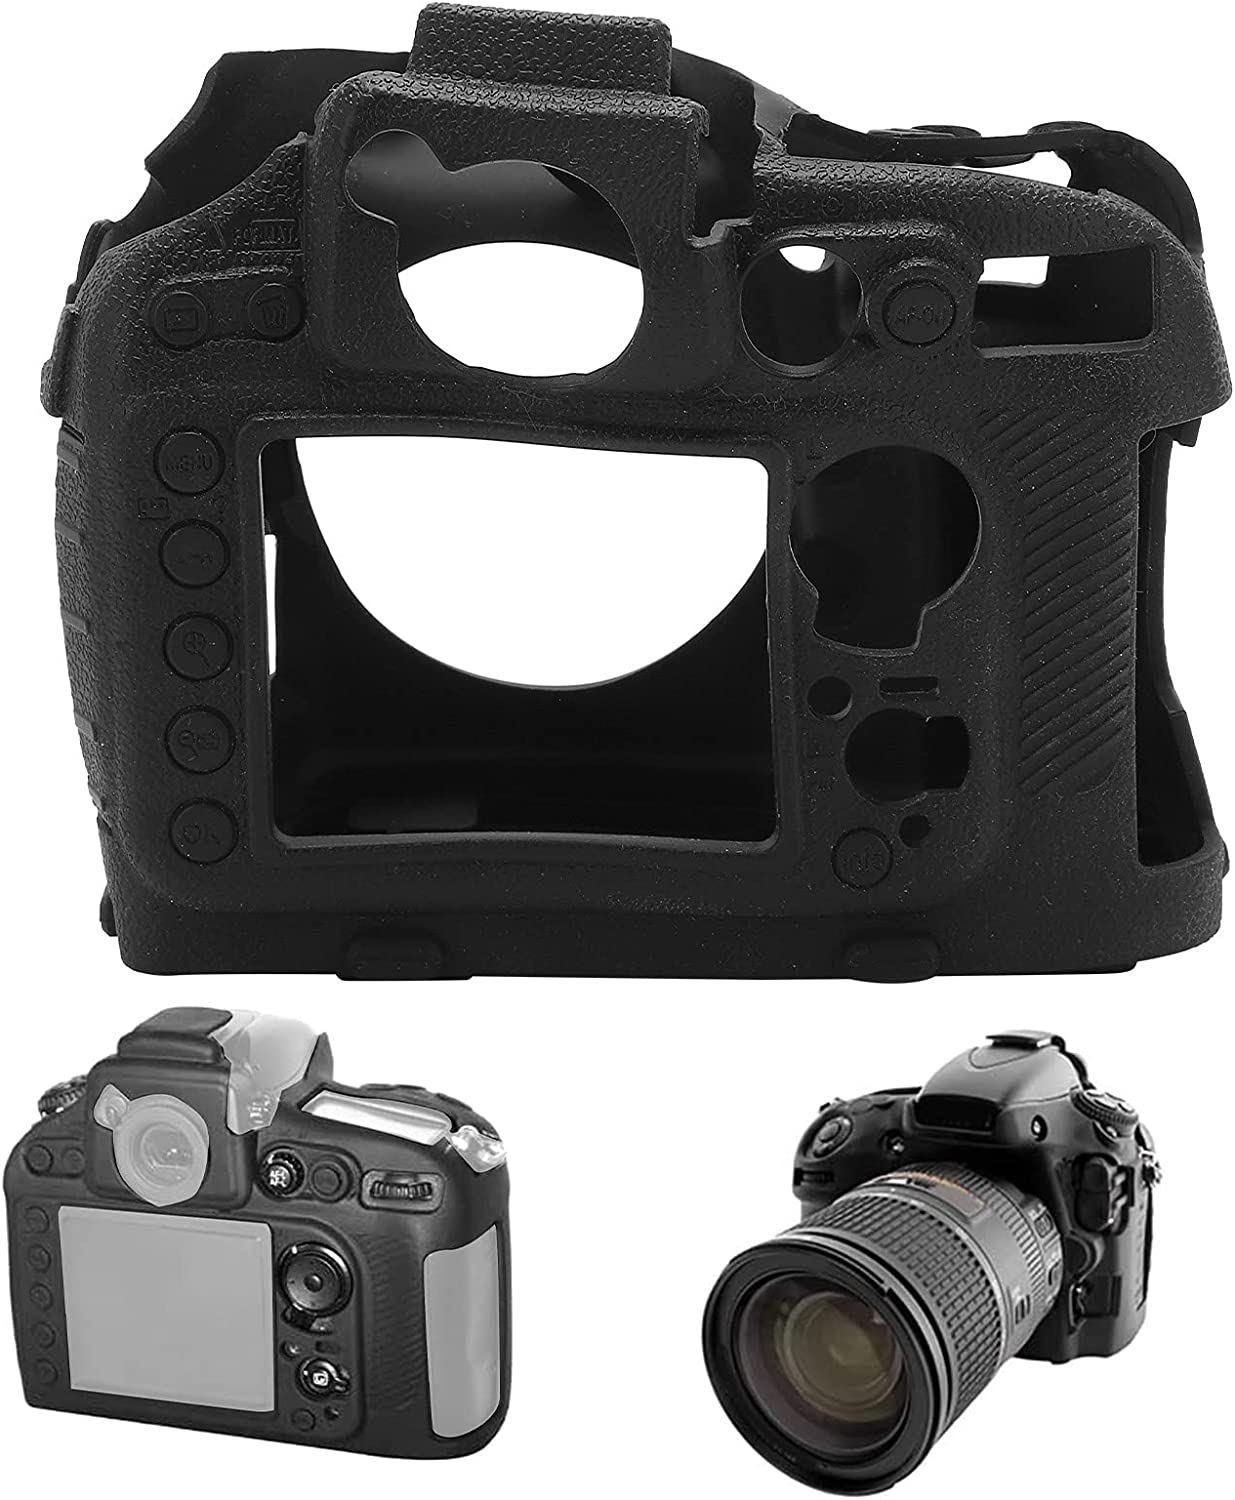 Vbestlife Camera Protective Housing Case Reservation Shell Cov Silicone Body 5 popular